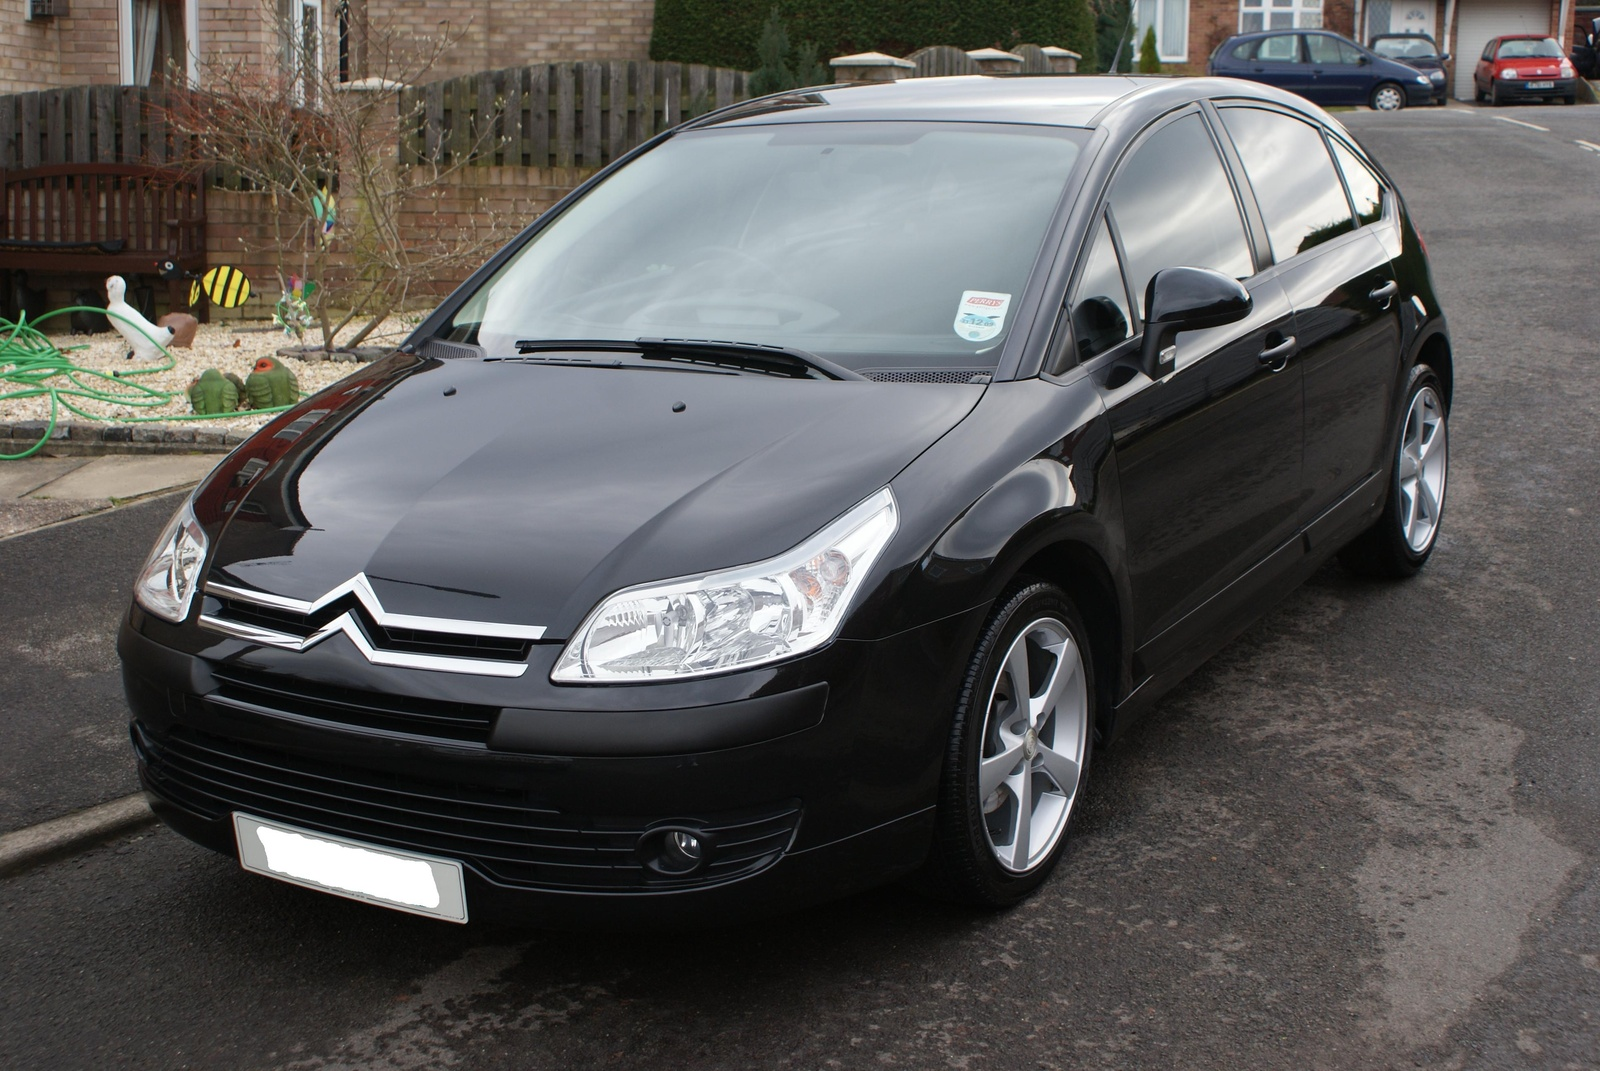 citroen c4 2007 review amazing pictures and images look at the car. Black Bedroom Furniture Sets. Home Design Ideas